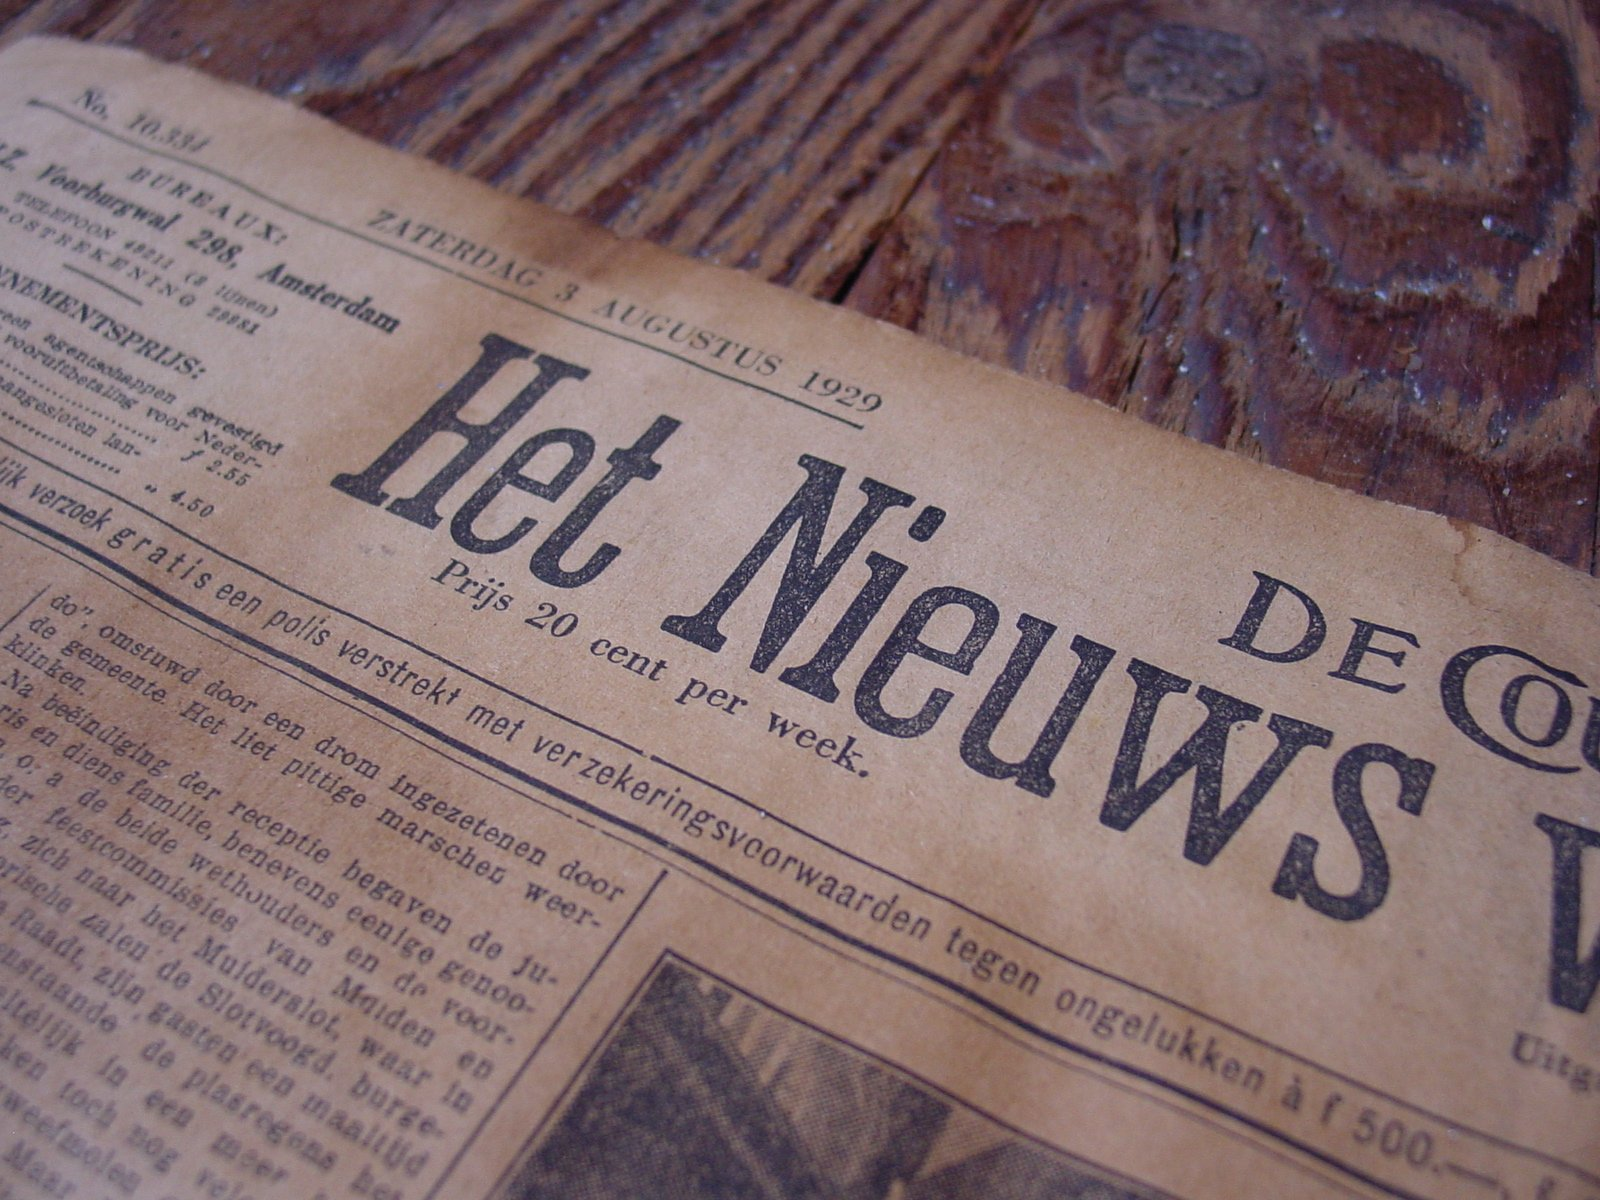 An old newspaper